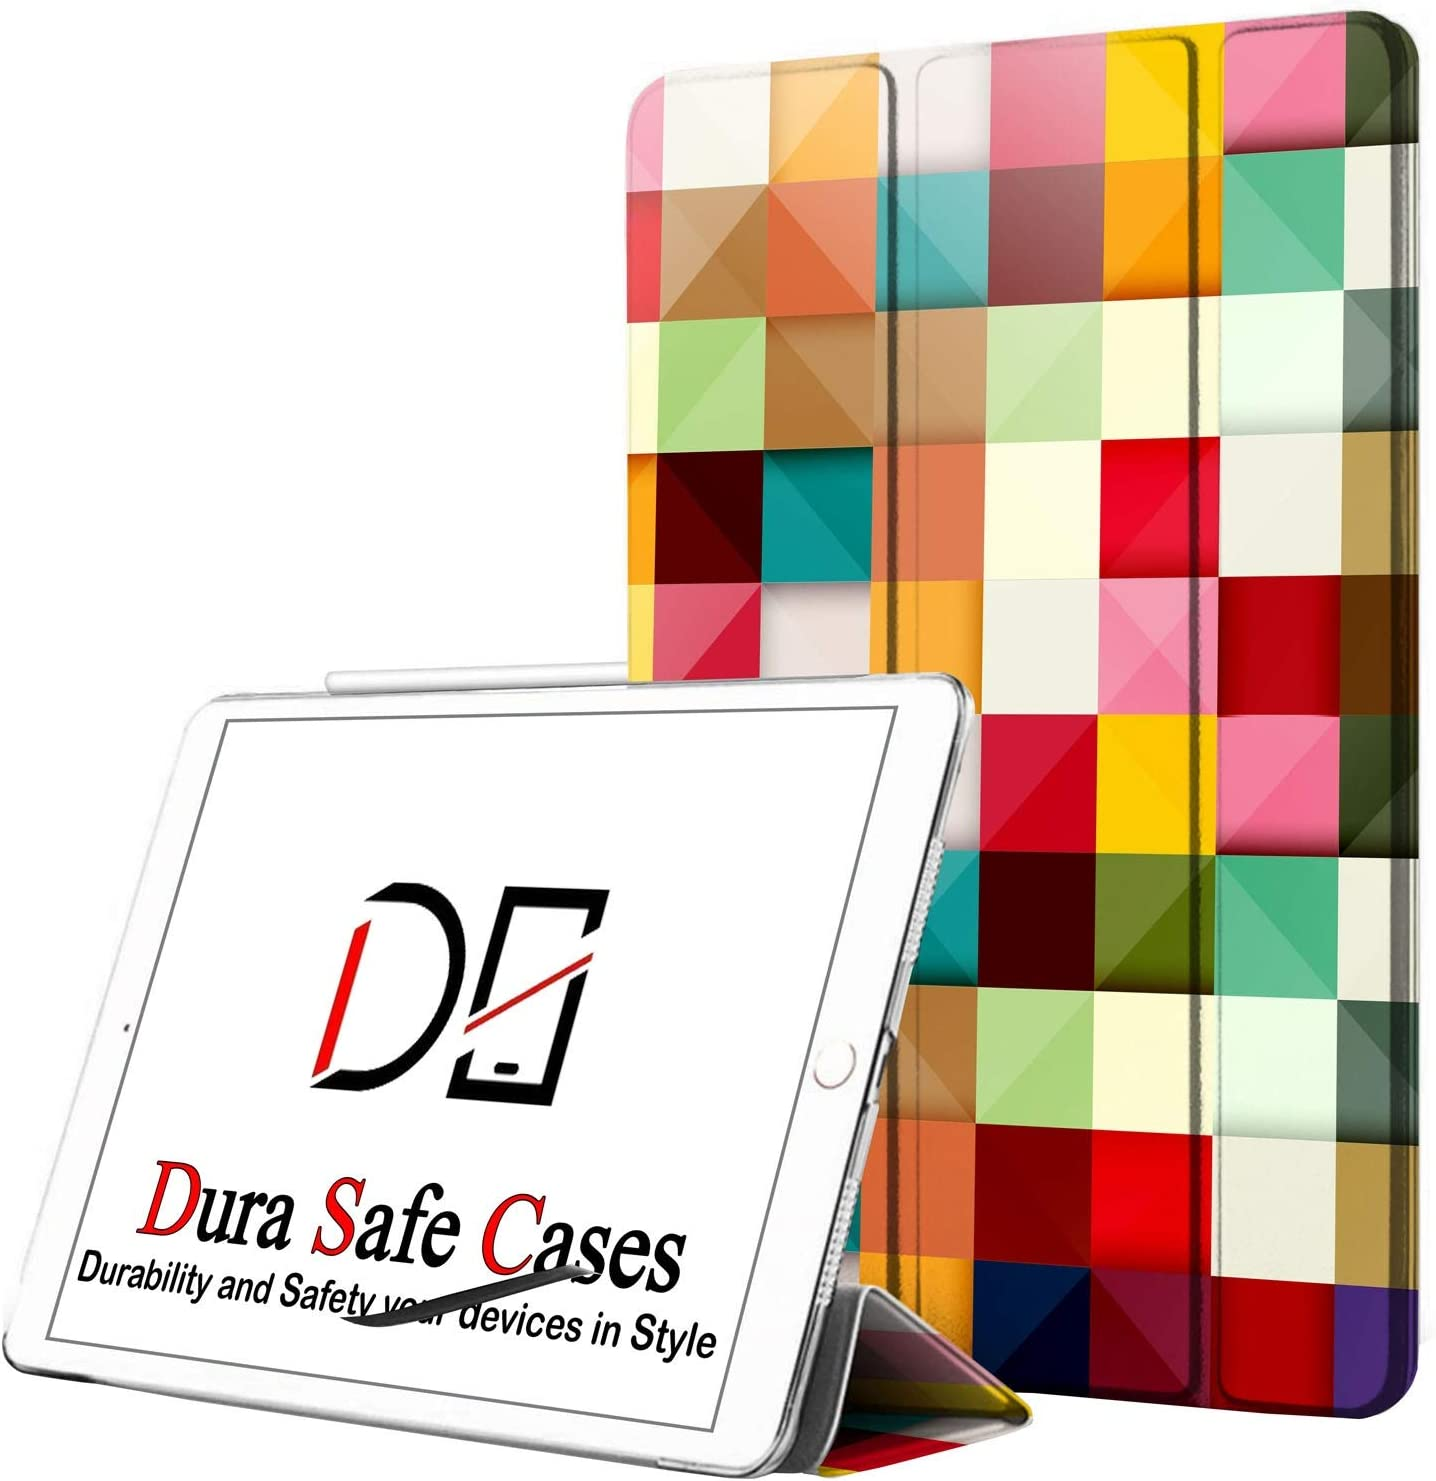 DuraSafe Cases For iPad PRO 12.9 - 3 Gen (Will Not Fit on PRO 12.9 2020) Ultra Slim Protective Cover Supports Pencil Pair & Charging with Transparent Back - Color Grid